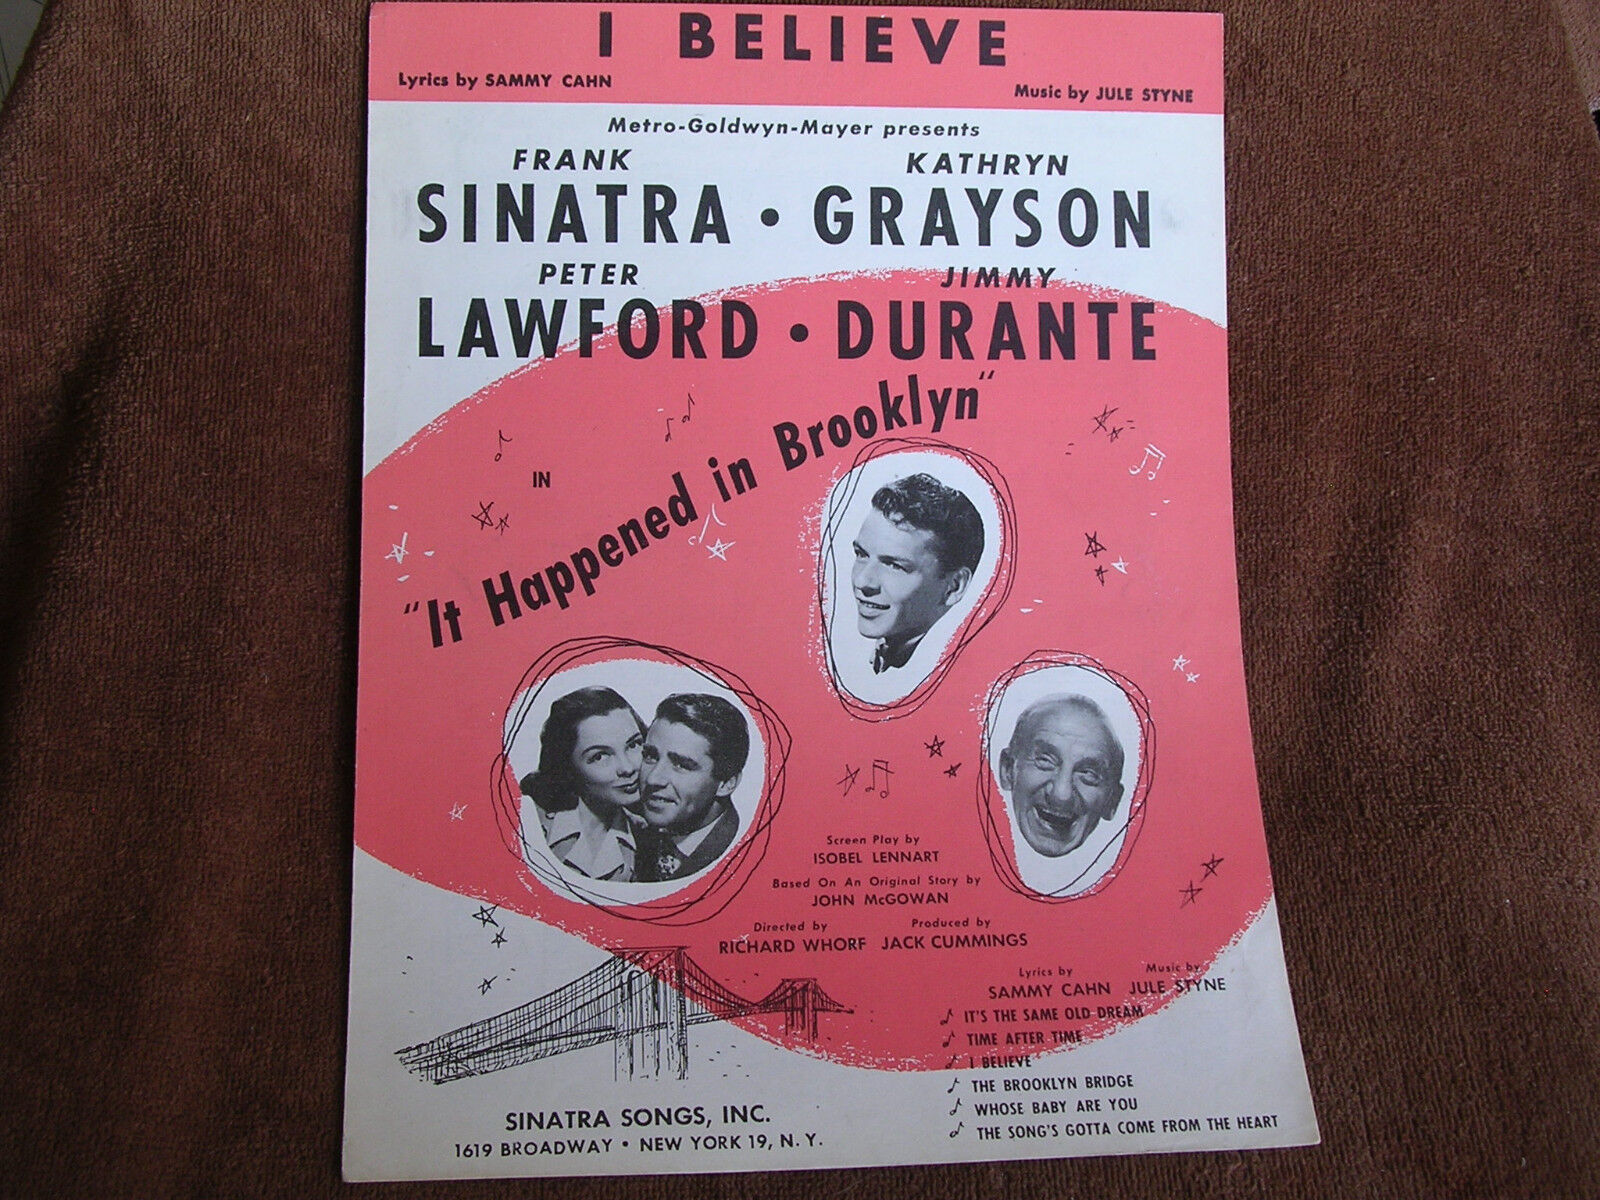 From it happened in brooklyn cahn styne frank sinatra cover photo 1947